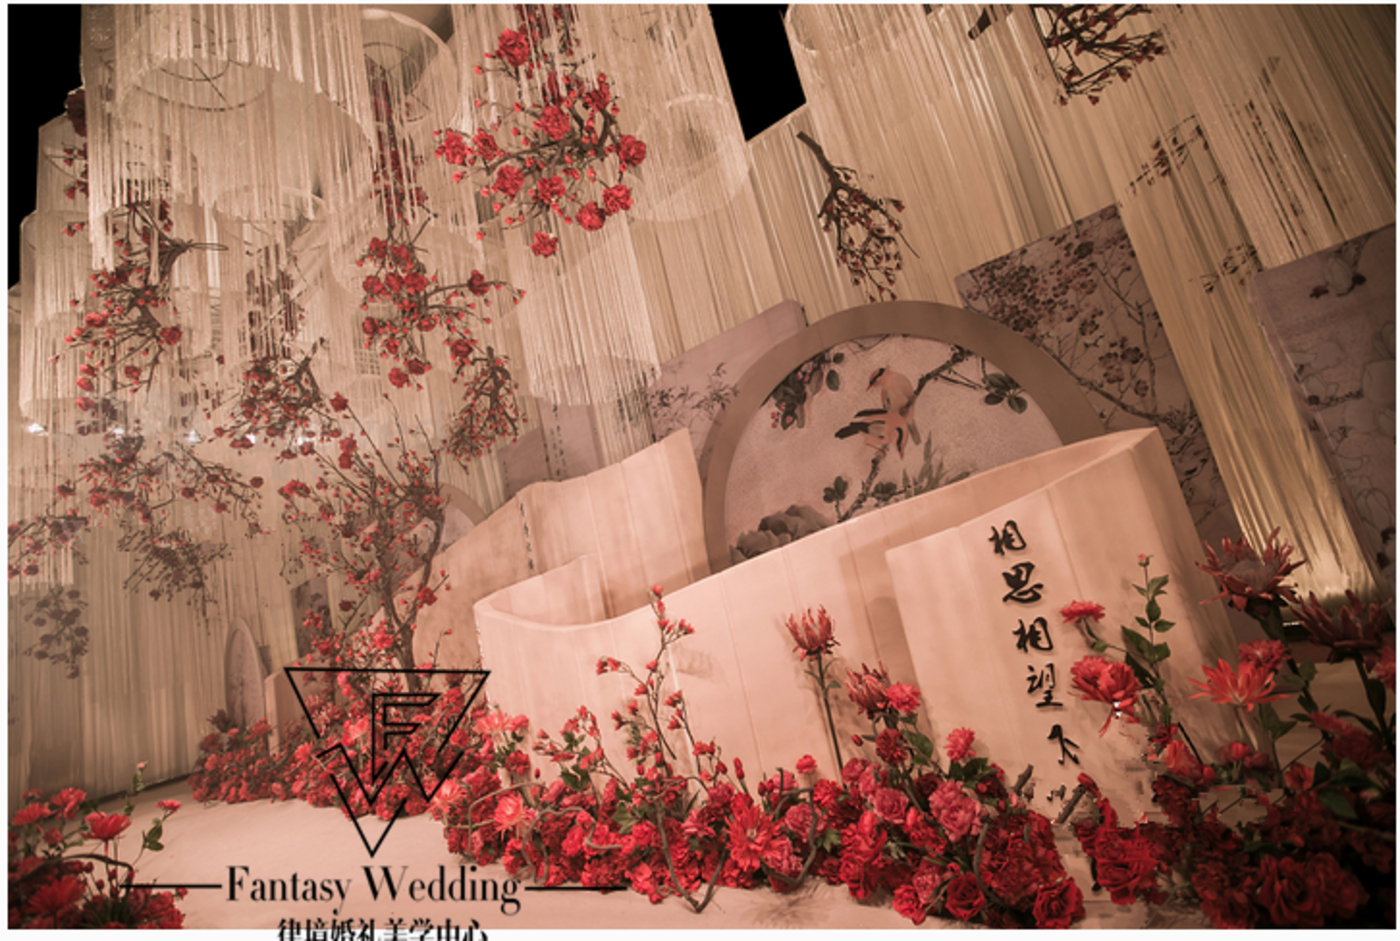 「Fantasy Wedding」 景秀未央17